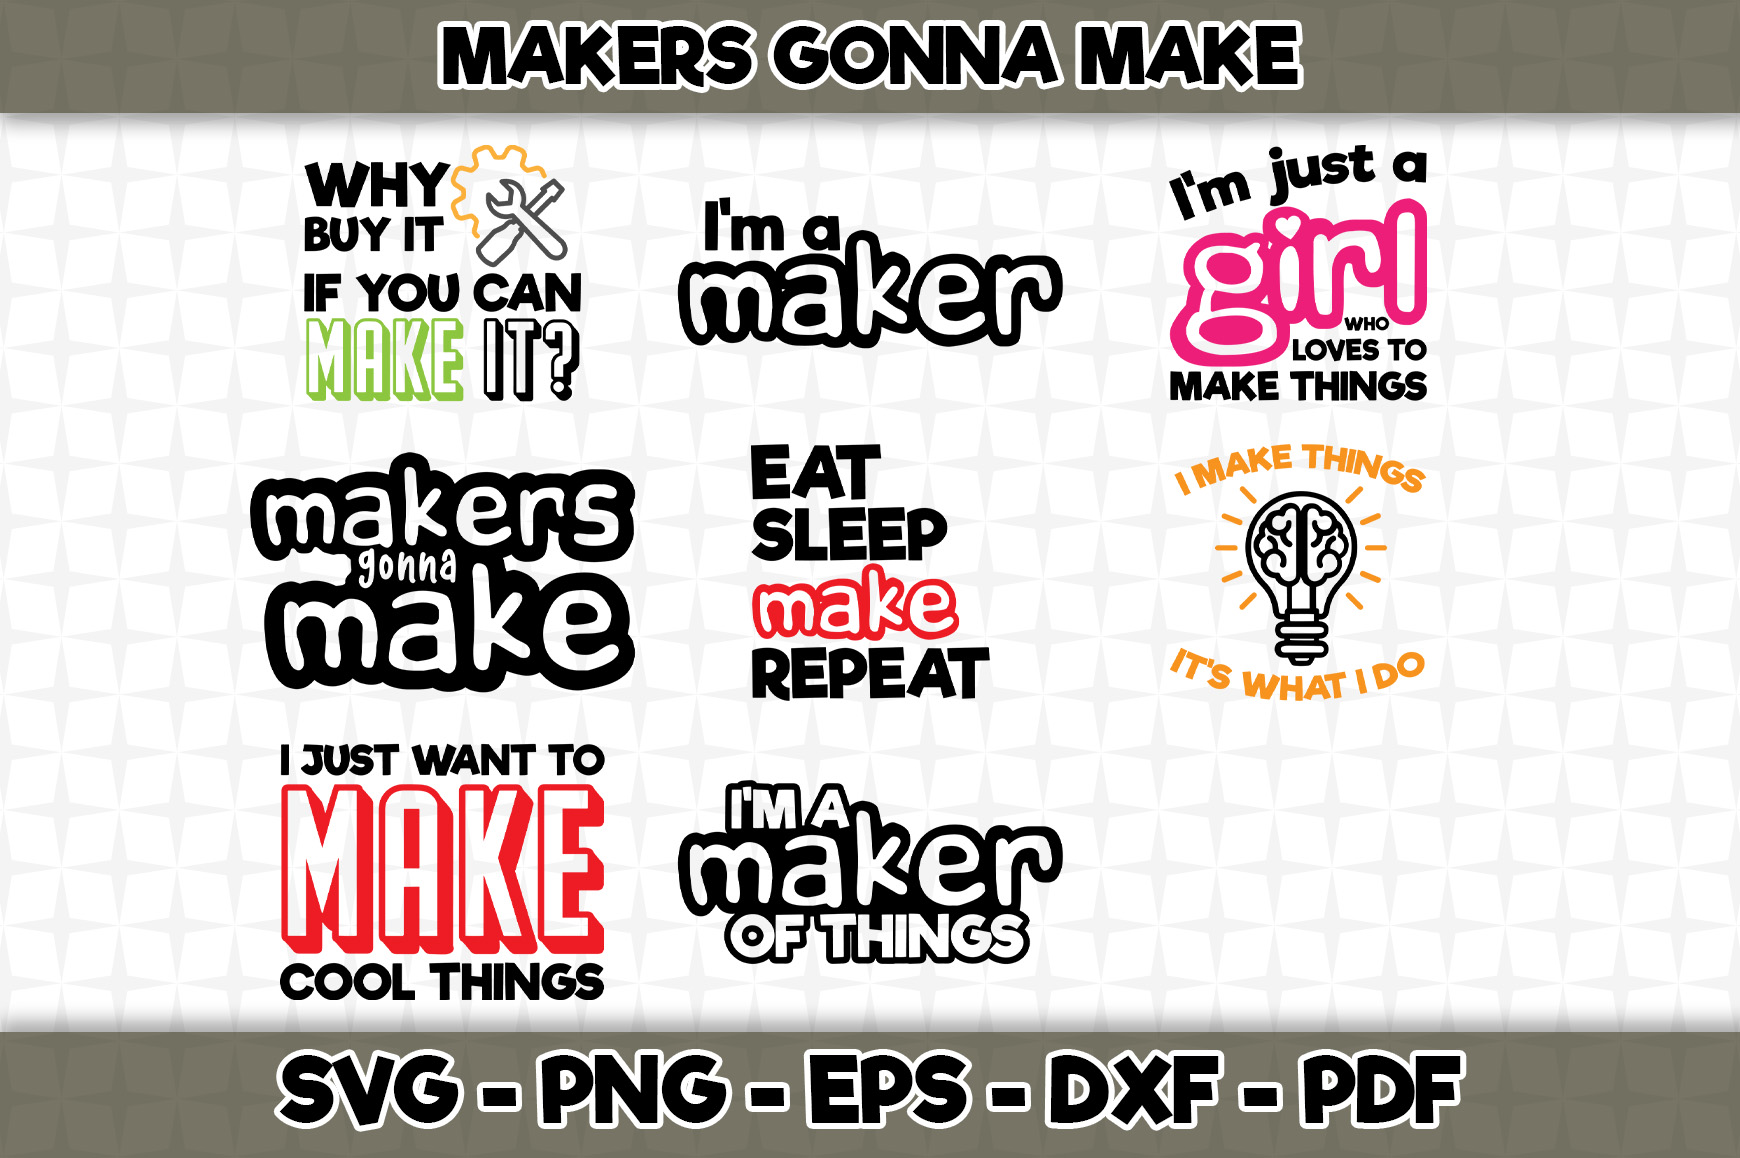 Download Free Makers Gonna Make Bundle Graphic By Svgexpress Creative Fabrica for Cricut Explore, Silhouette and other cutting machines.